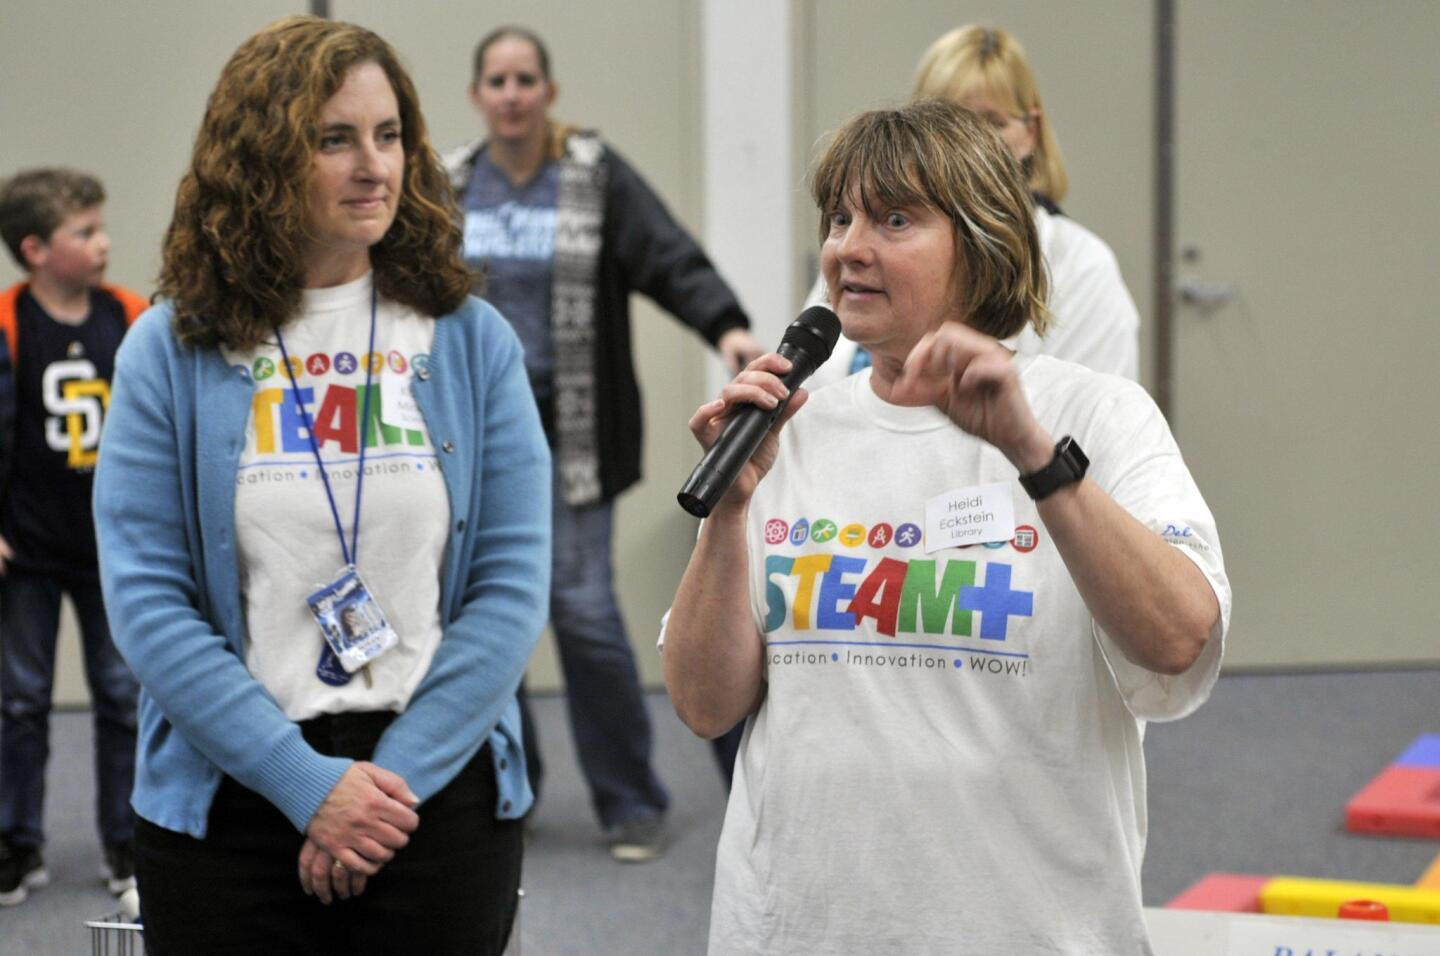 Science teacher Kathy Minarik, Librarian Heidi Eckstein